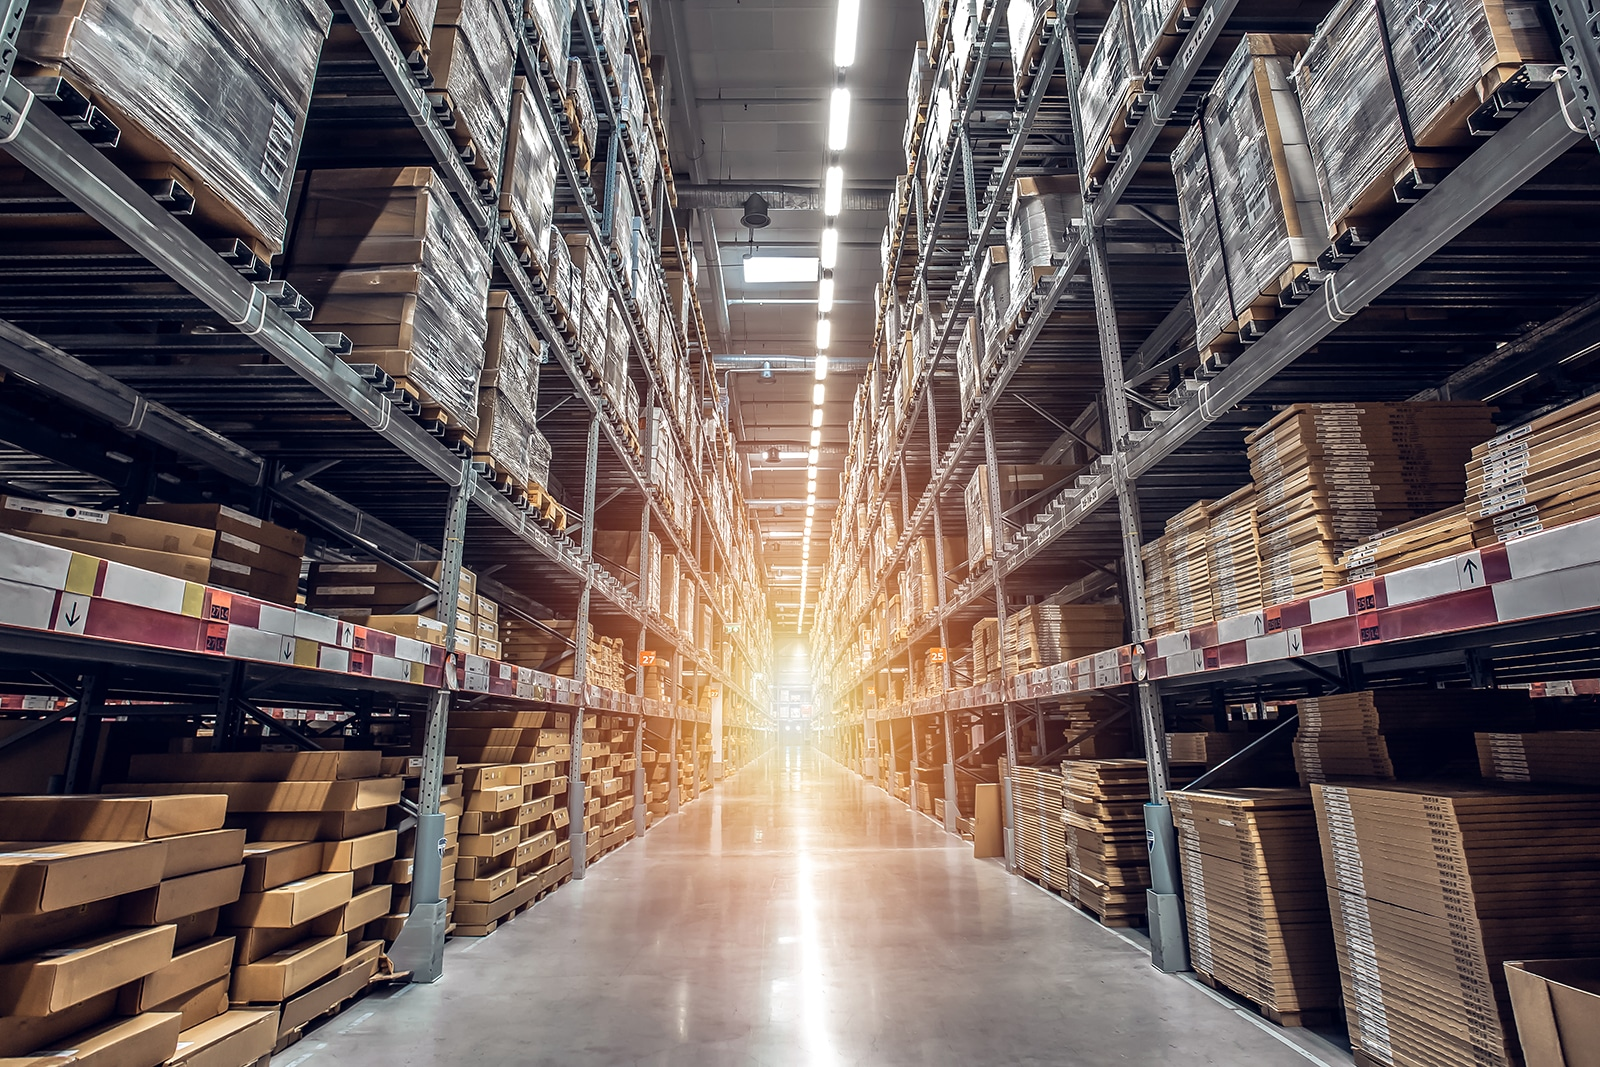 Warehouse Design: 6 Benefits of Hiring Professionals